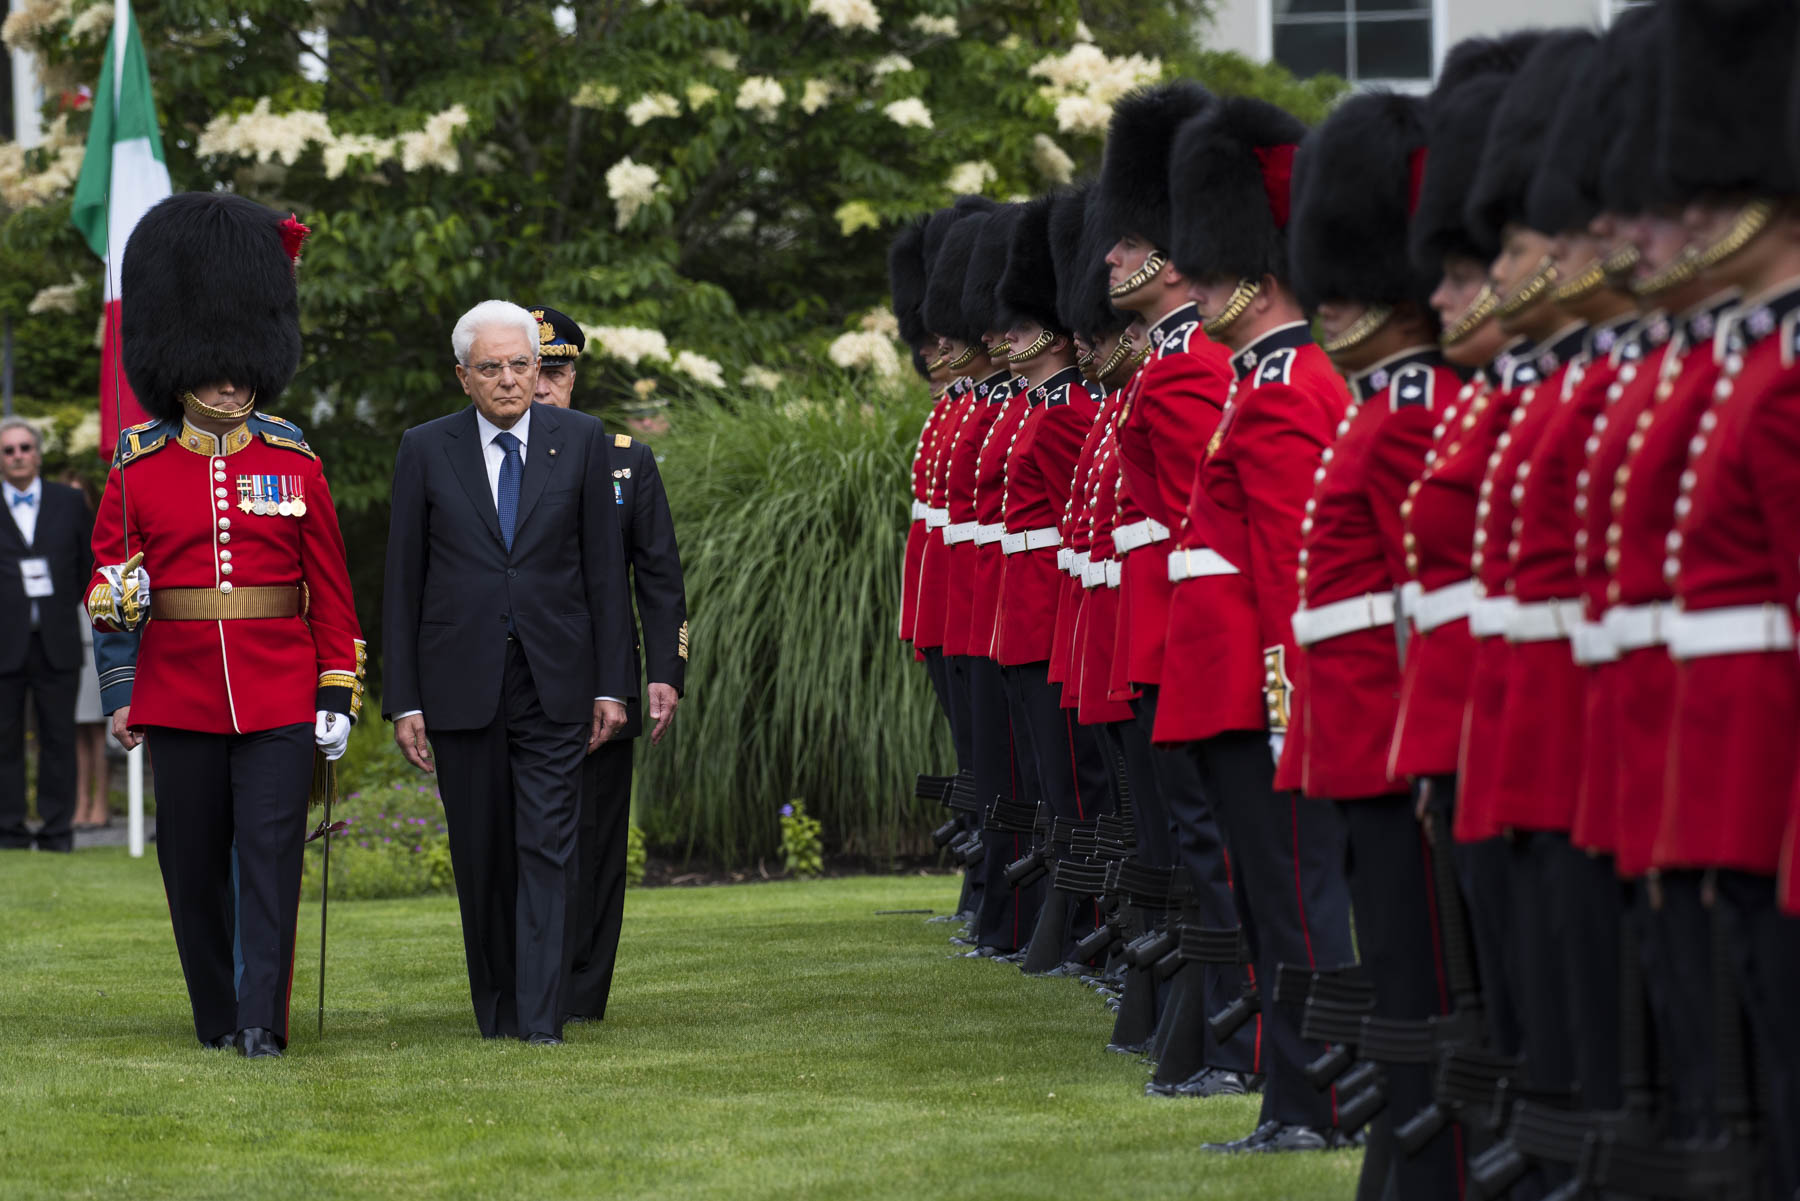 As part of the ceremony, he inspected the guard of honour.